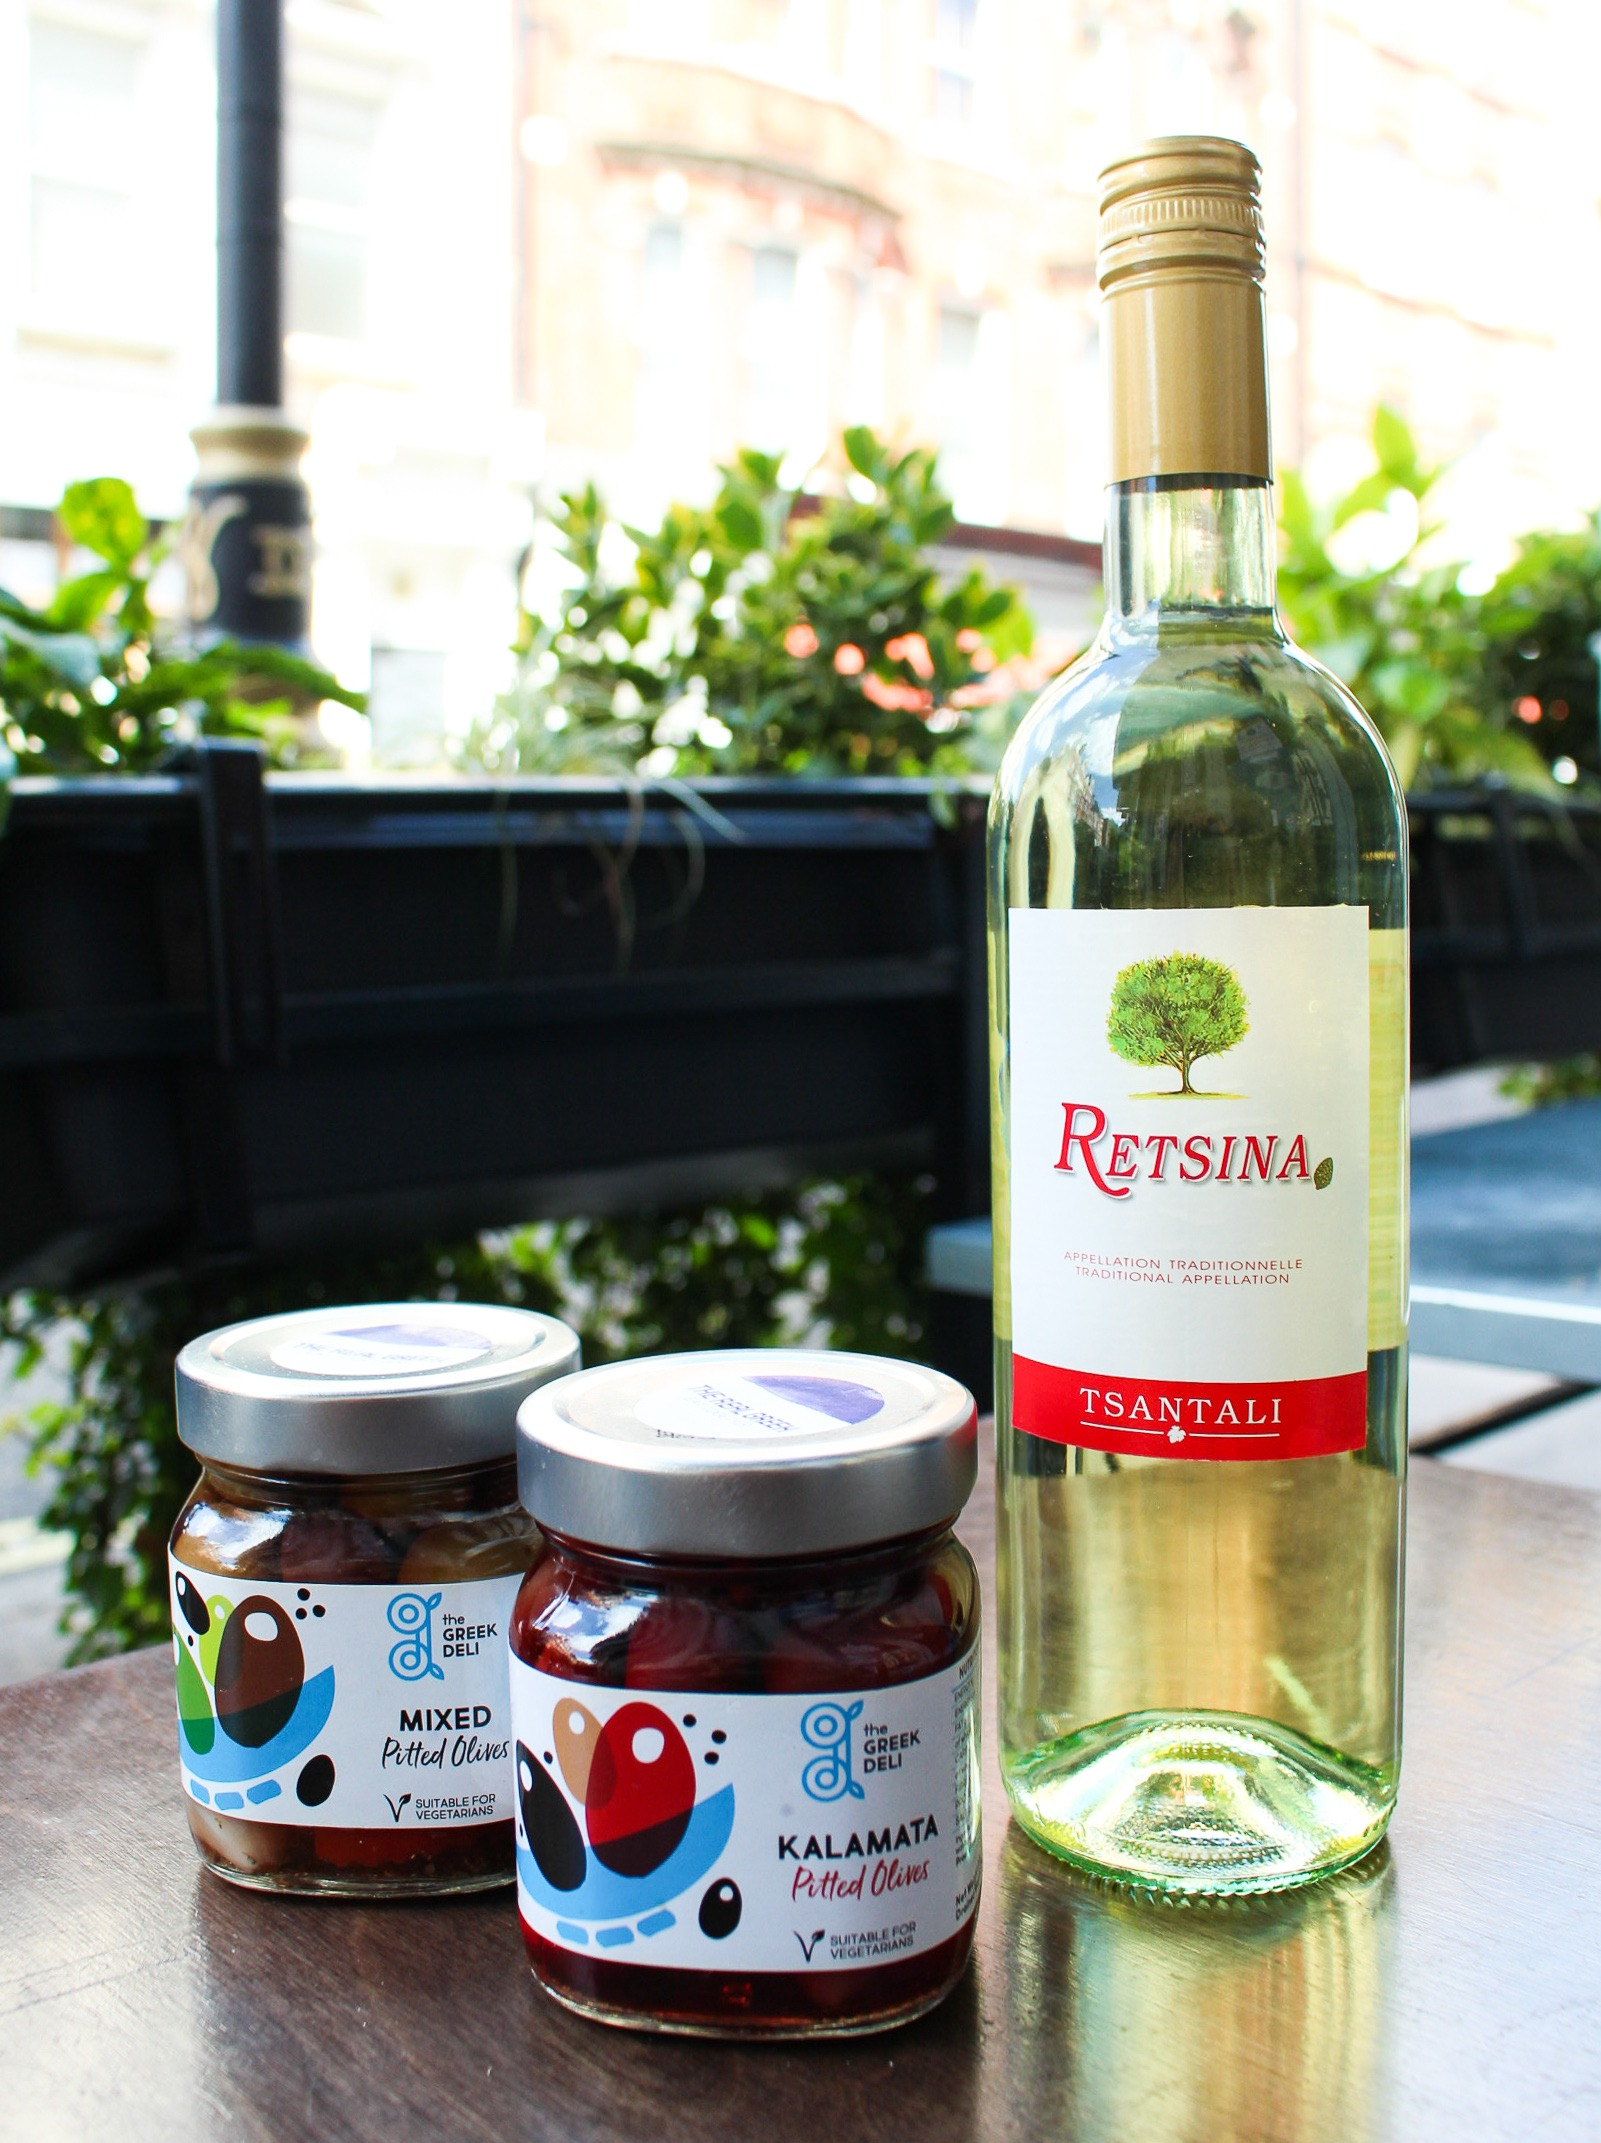 The Real Greek - Wine and Cheese - Retsina and Olives